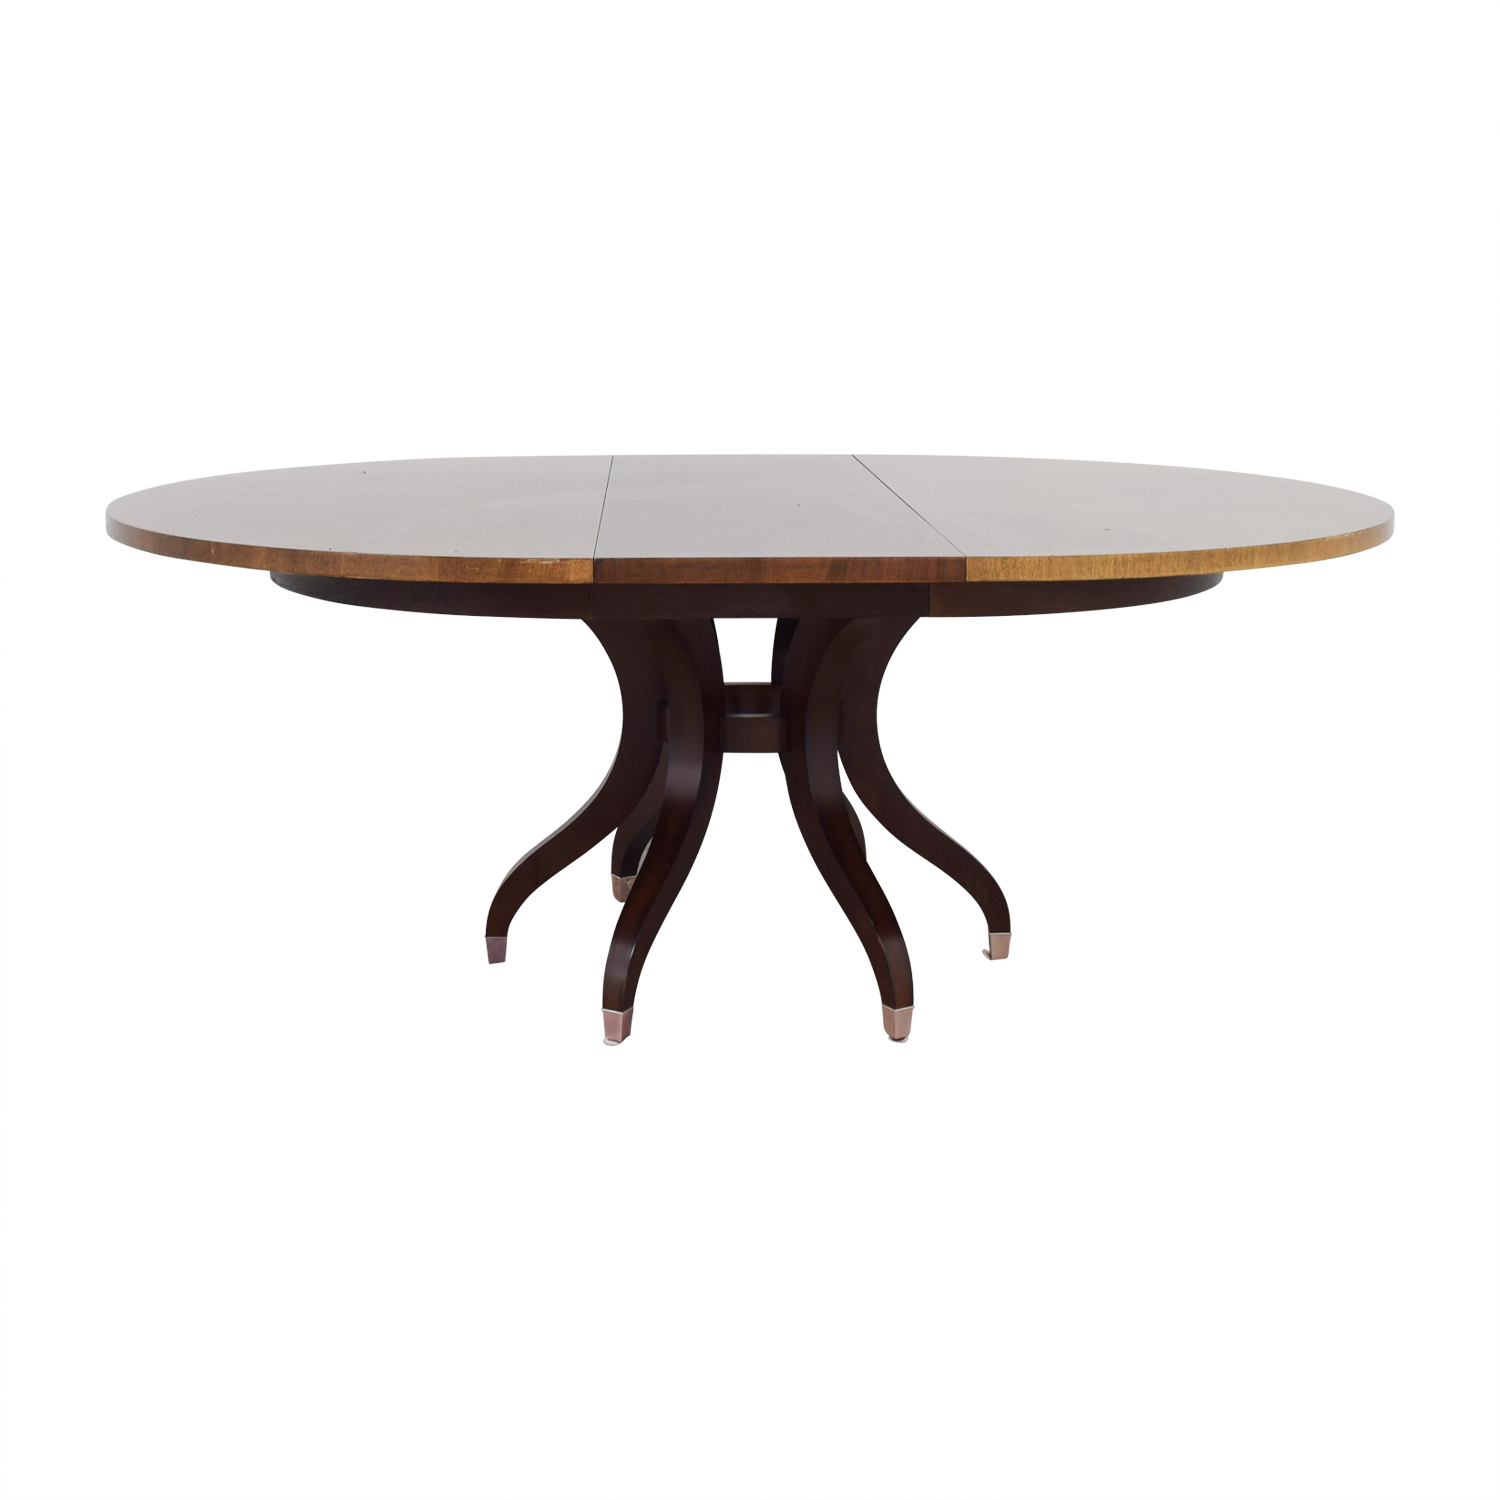 Ethan Allen Ethan Allen Ashcroft Dining Table Cherry